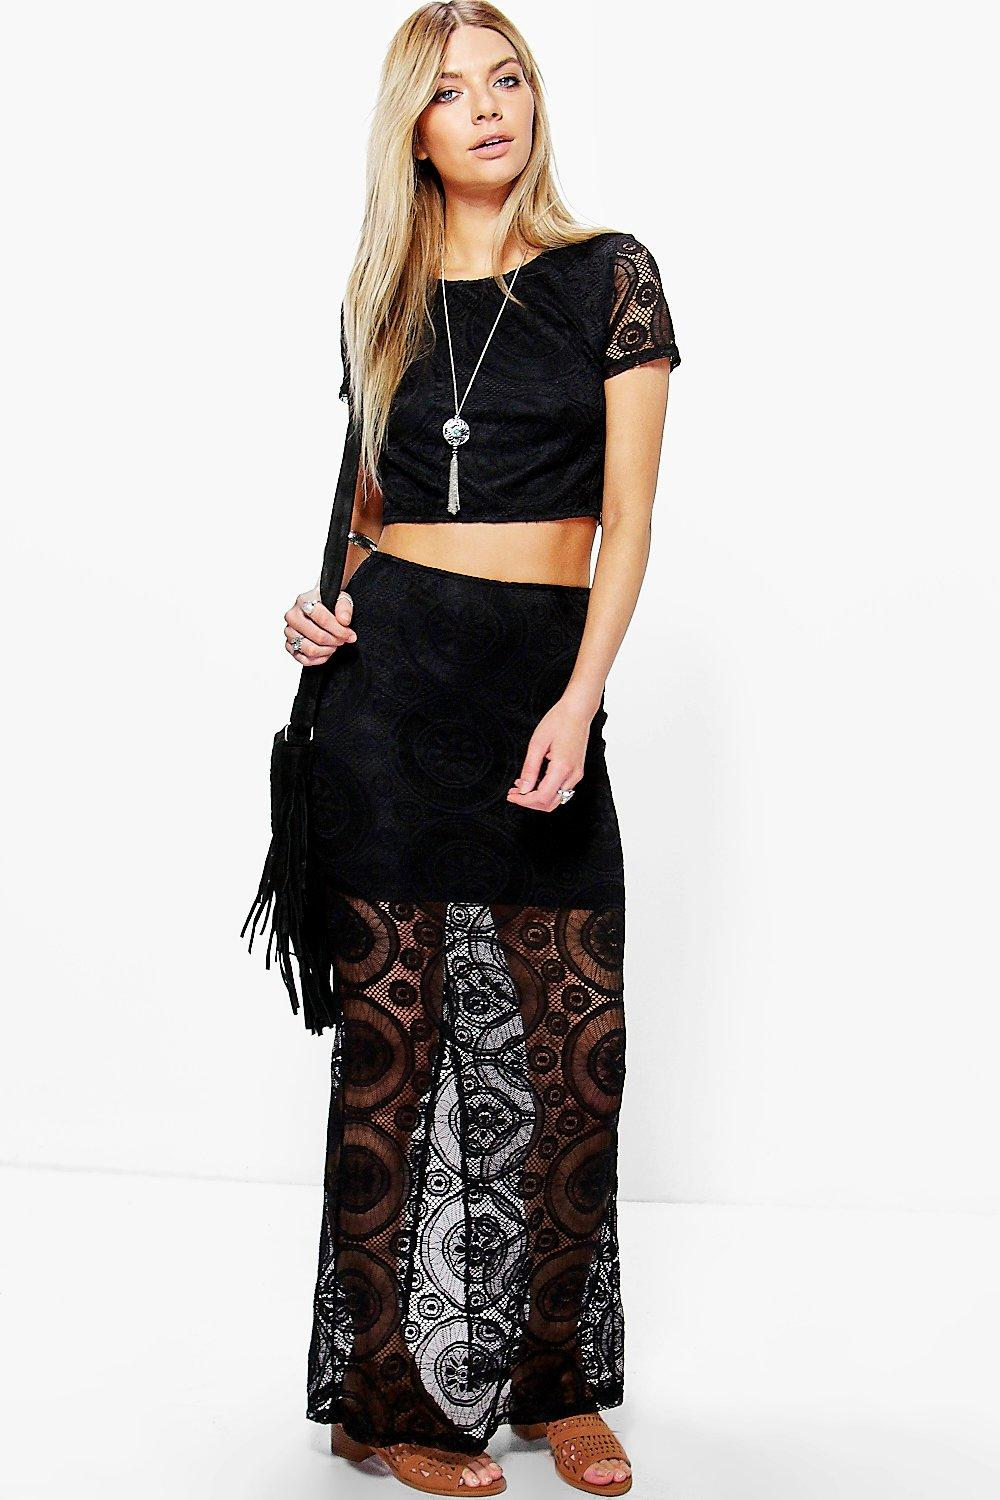 Holly Boutique Lace Crop And Maxi Skirt Co-Ord